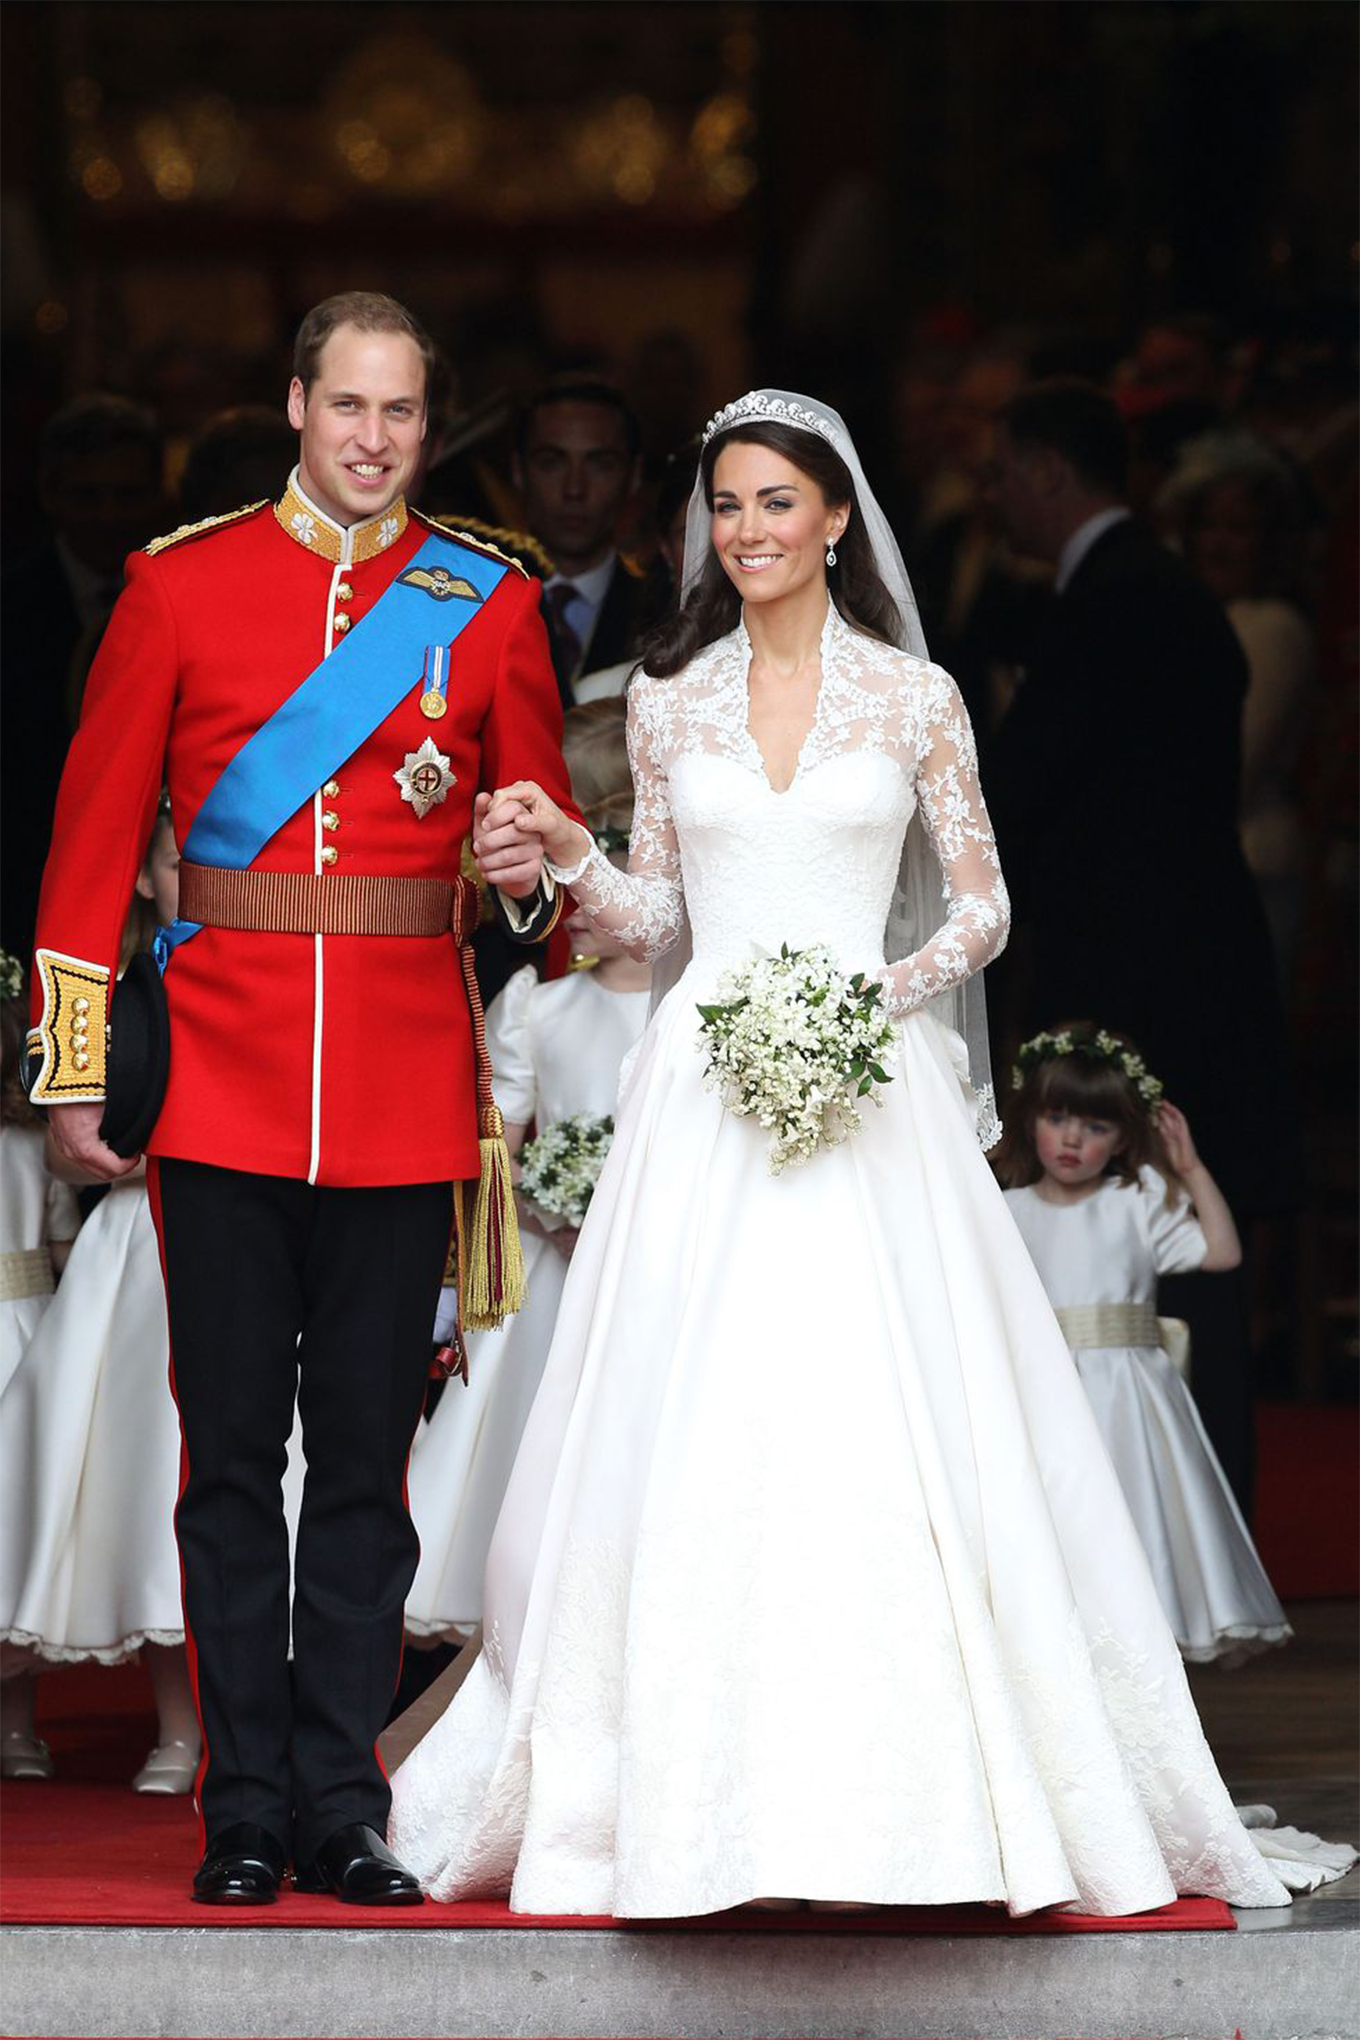 Royal Brides Their Wedding Dresses Shoegal Out In The World